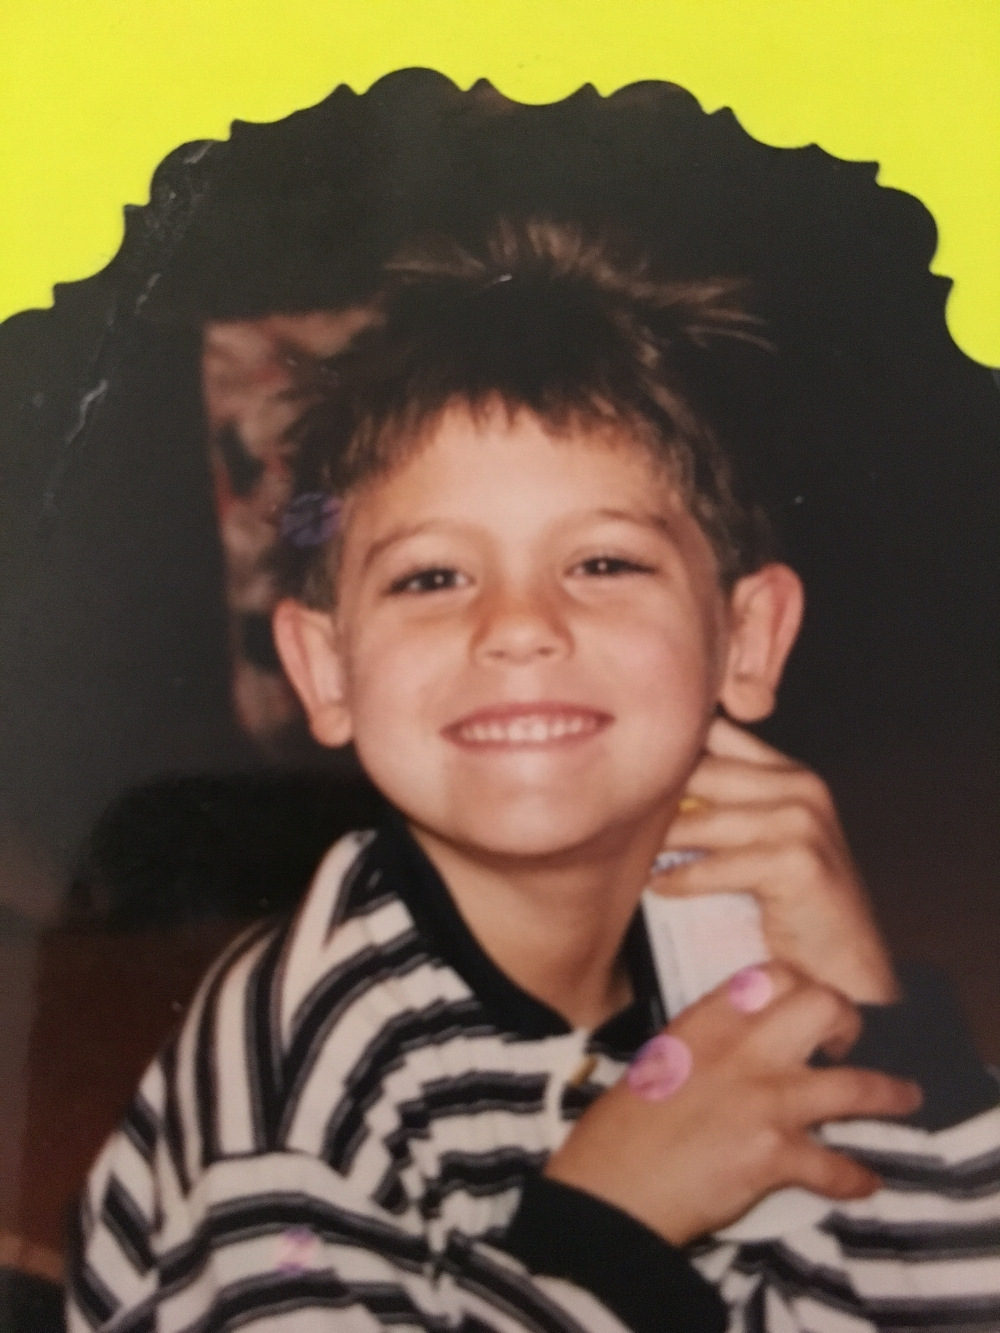 John, the cute kid with the long eyelashes, around the time he came to live with the Lindstroms.